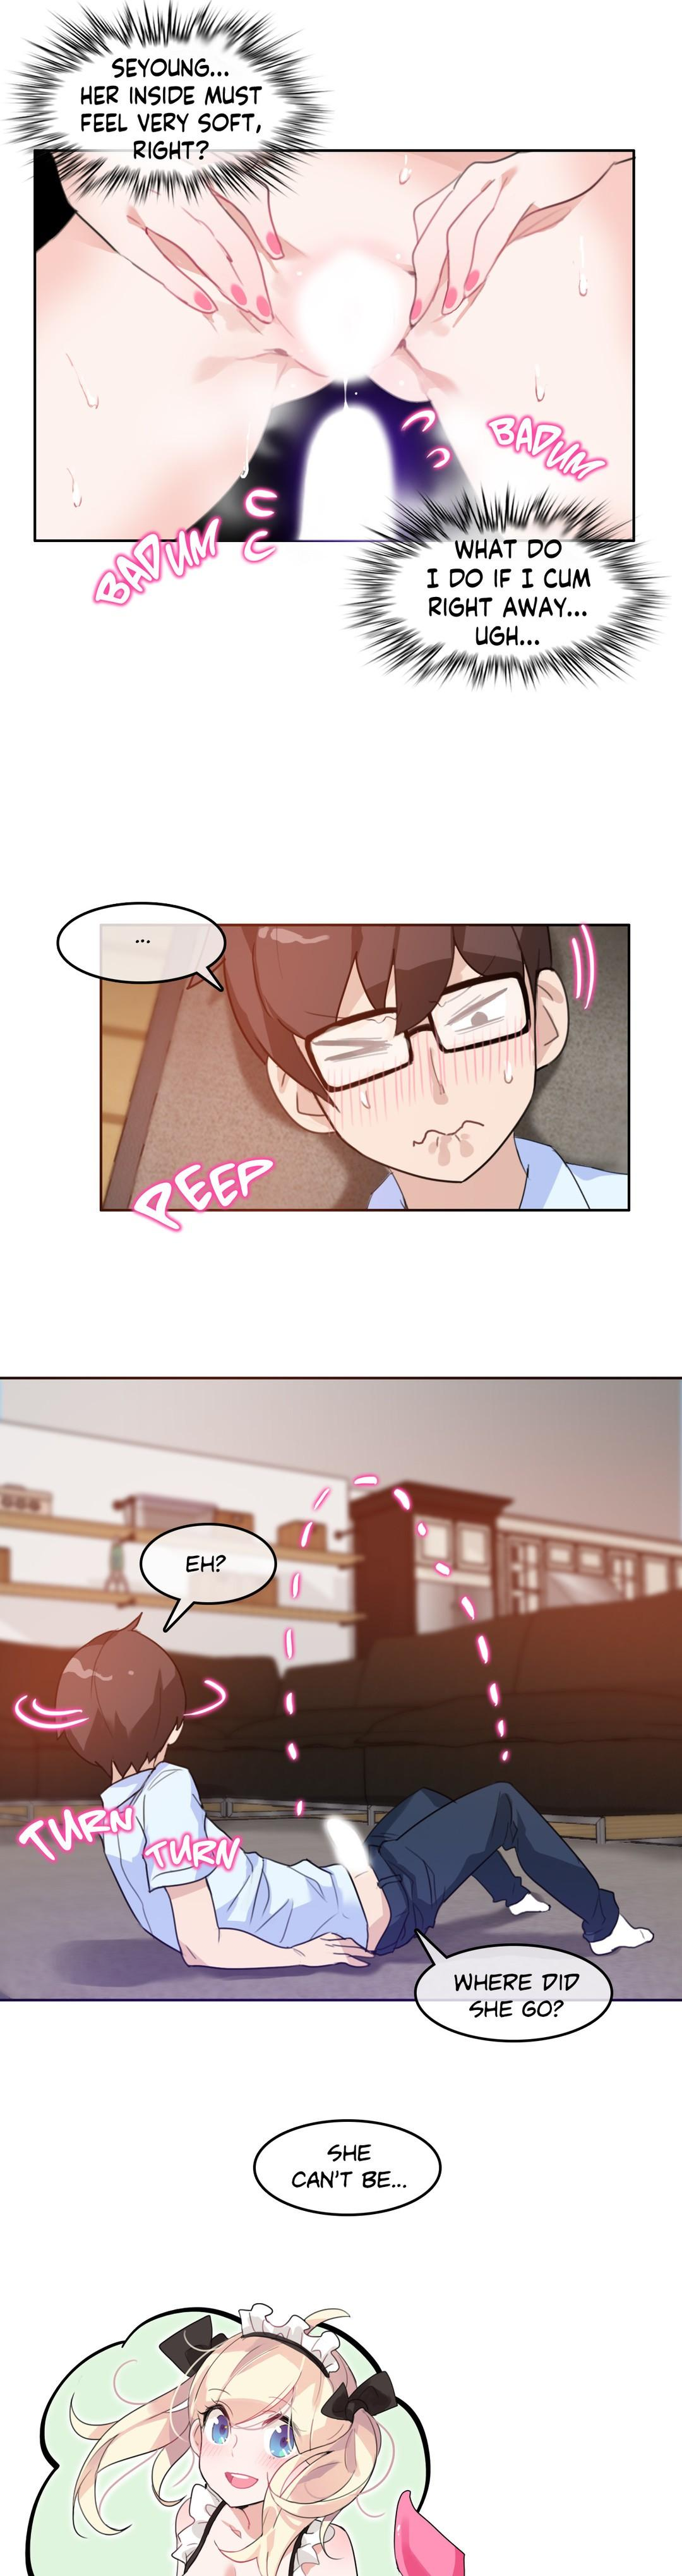 A Pervert's Daily Life Ch. 1-34 225